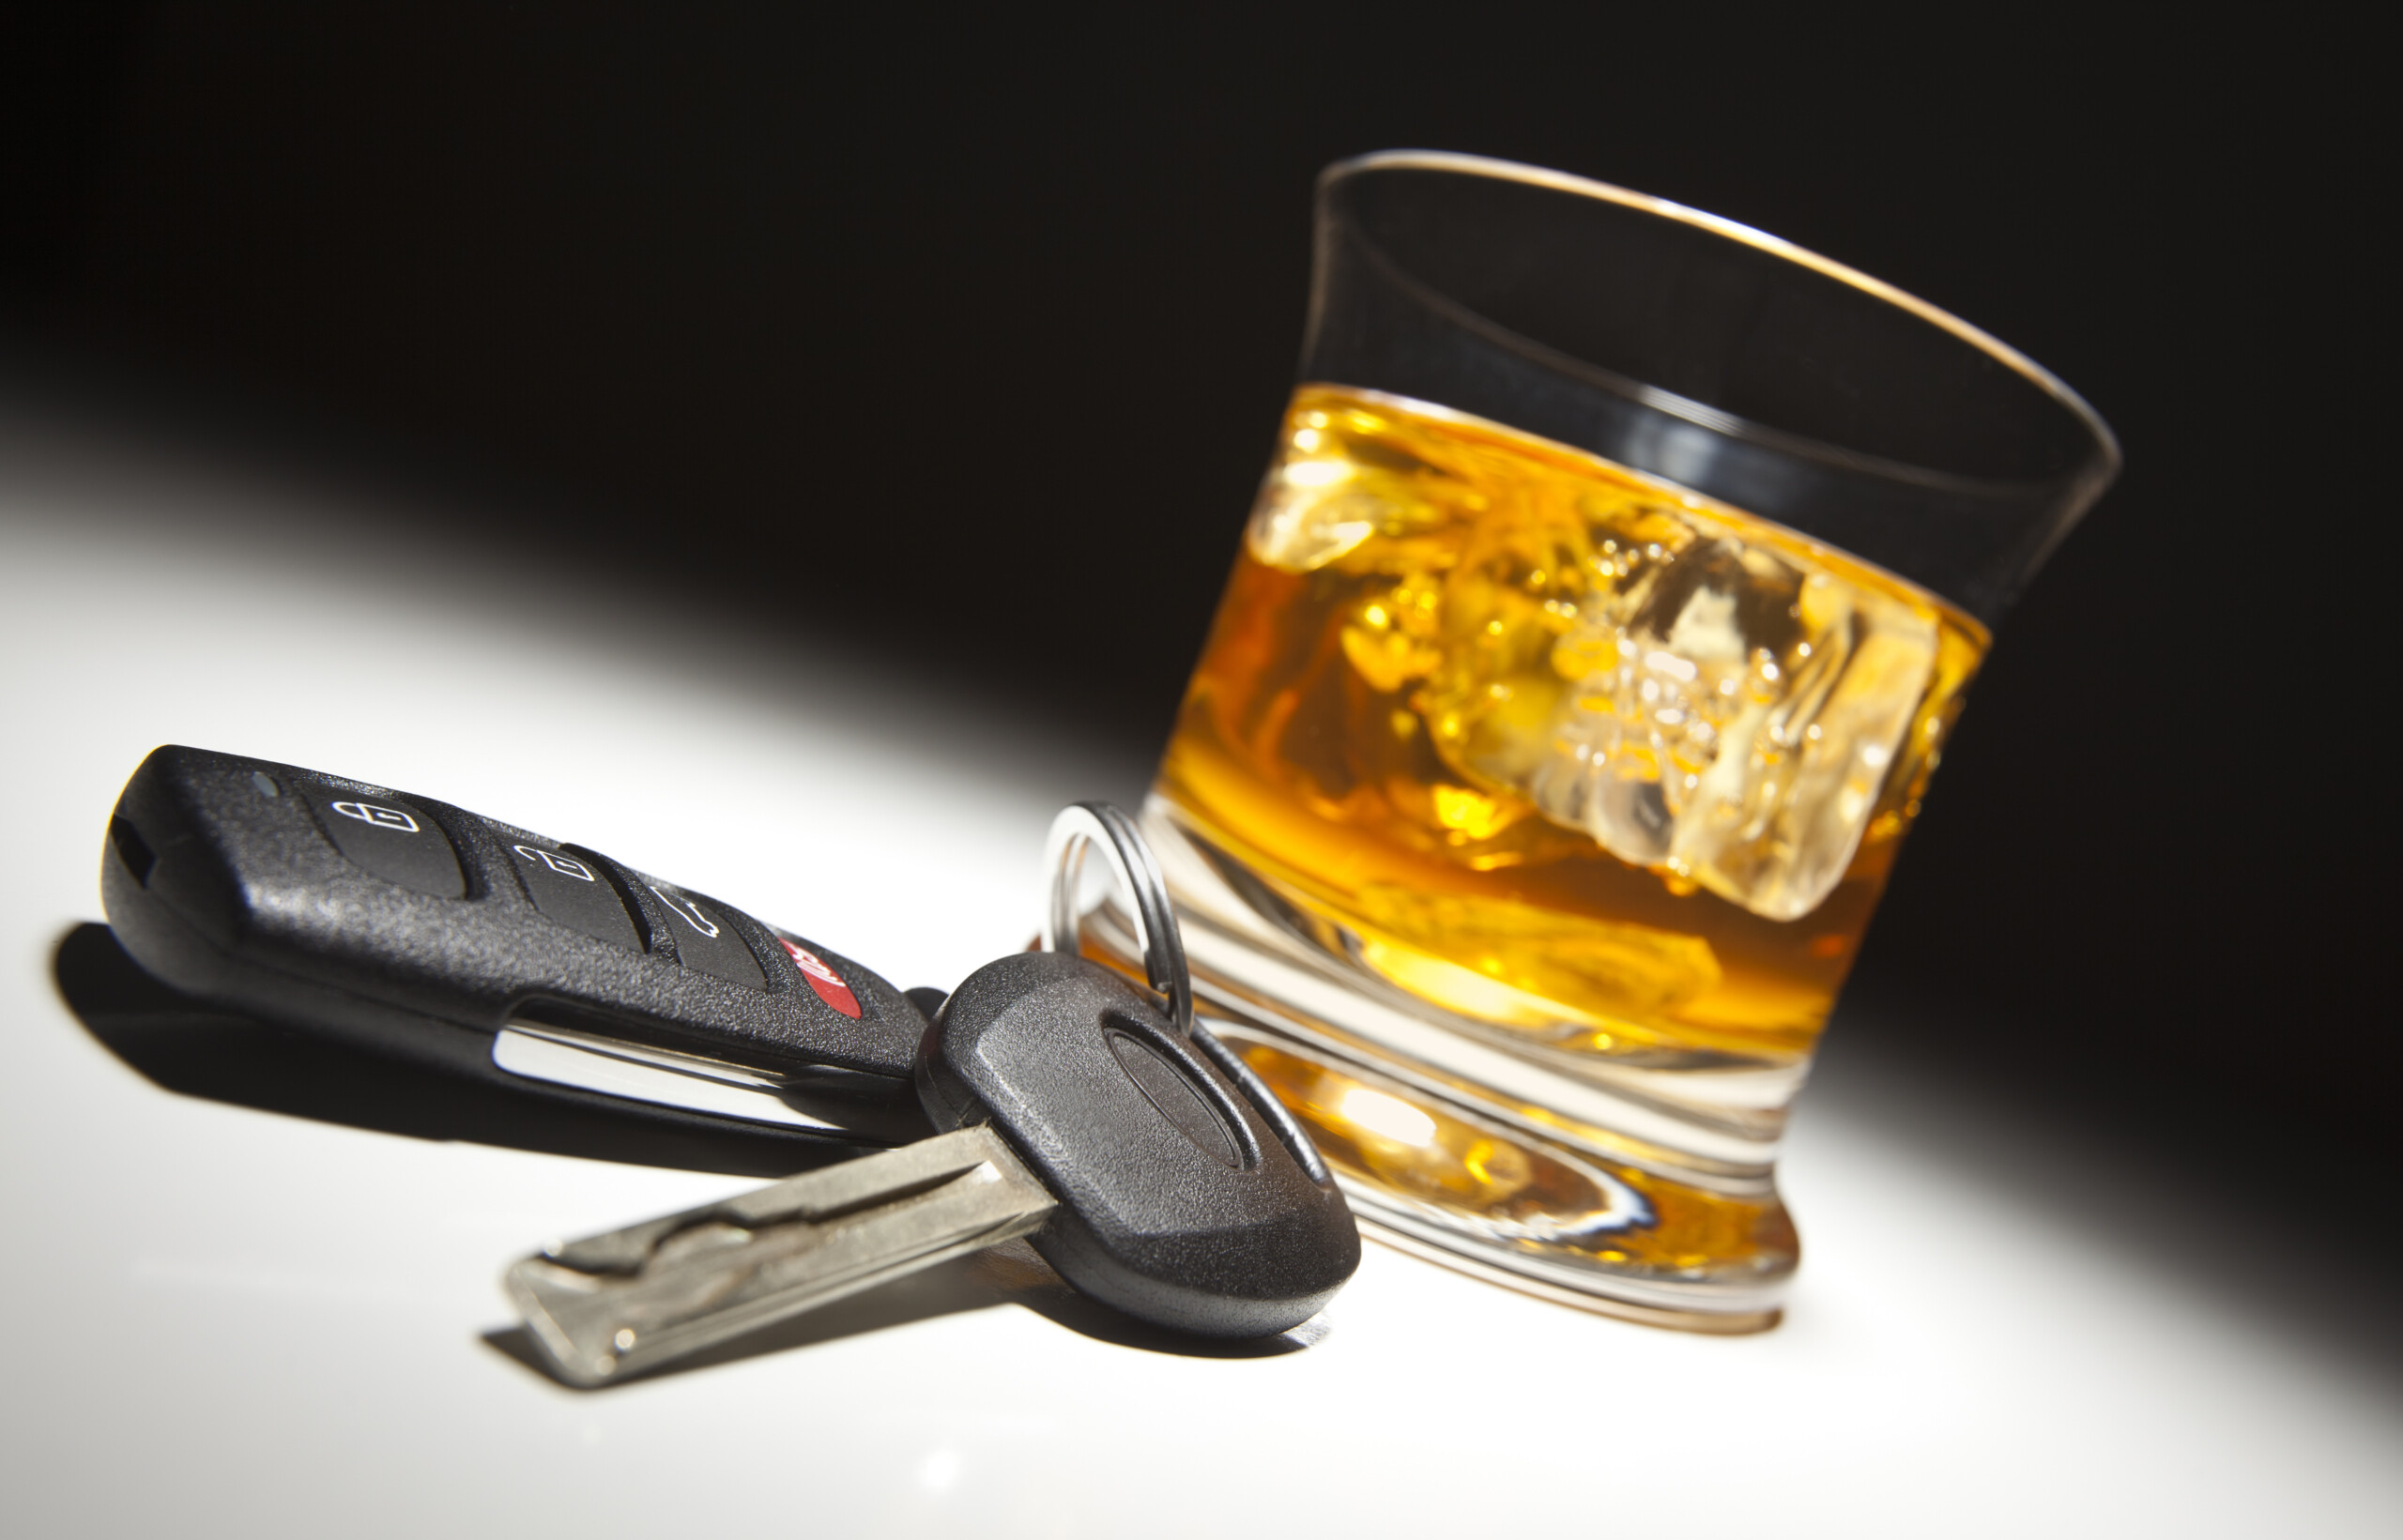 16 Ways to Stop Friends From Drinking & Driving